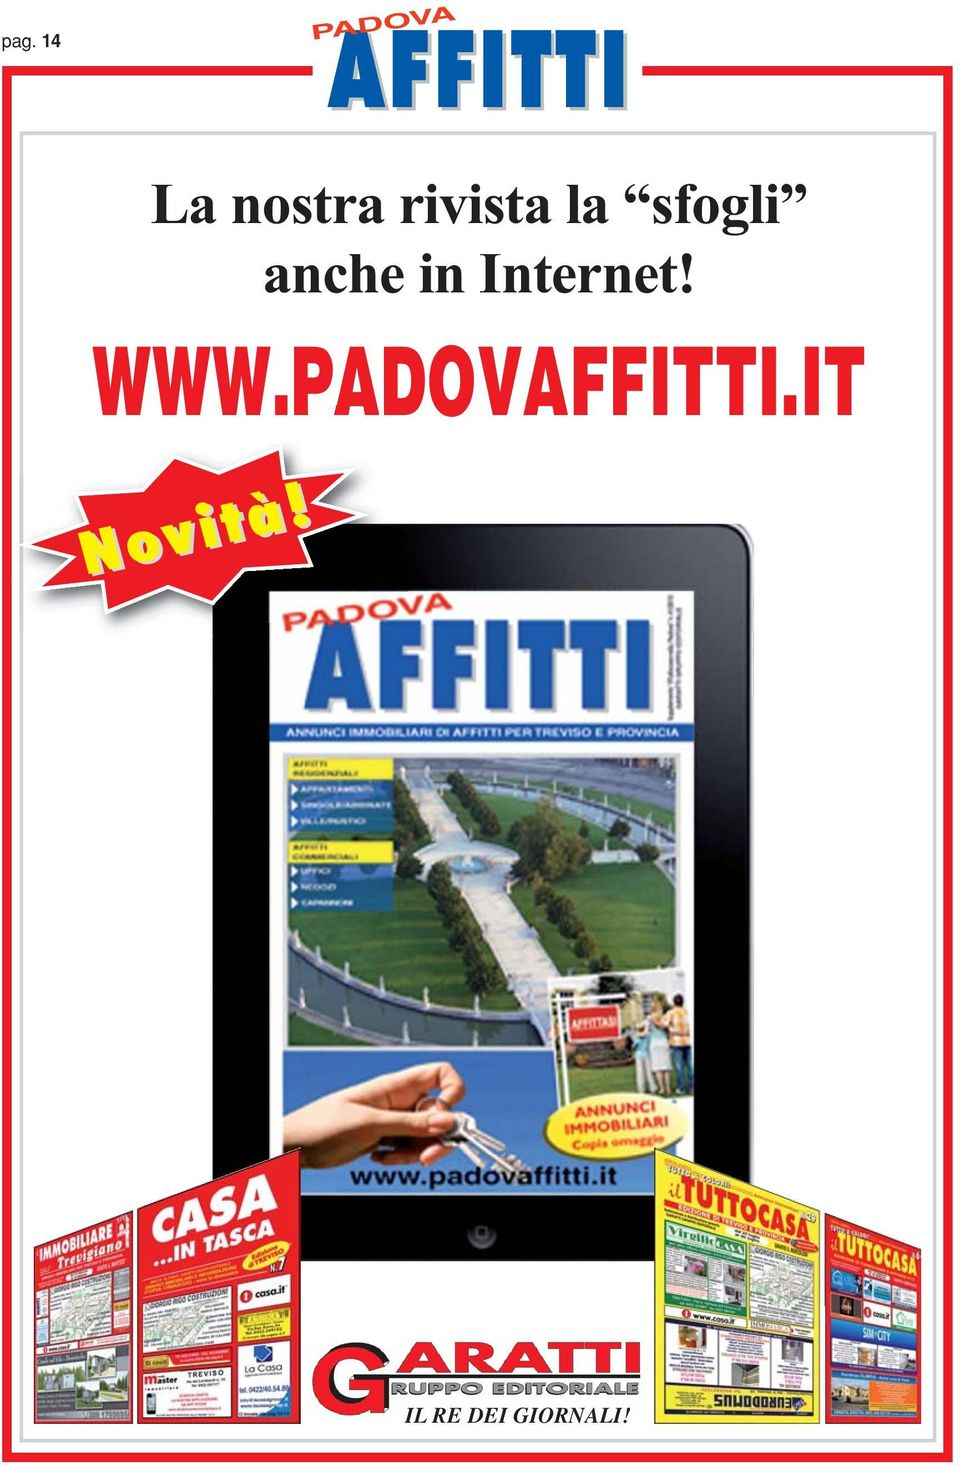 in Internet! WWW.FFITTI.